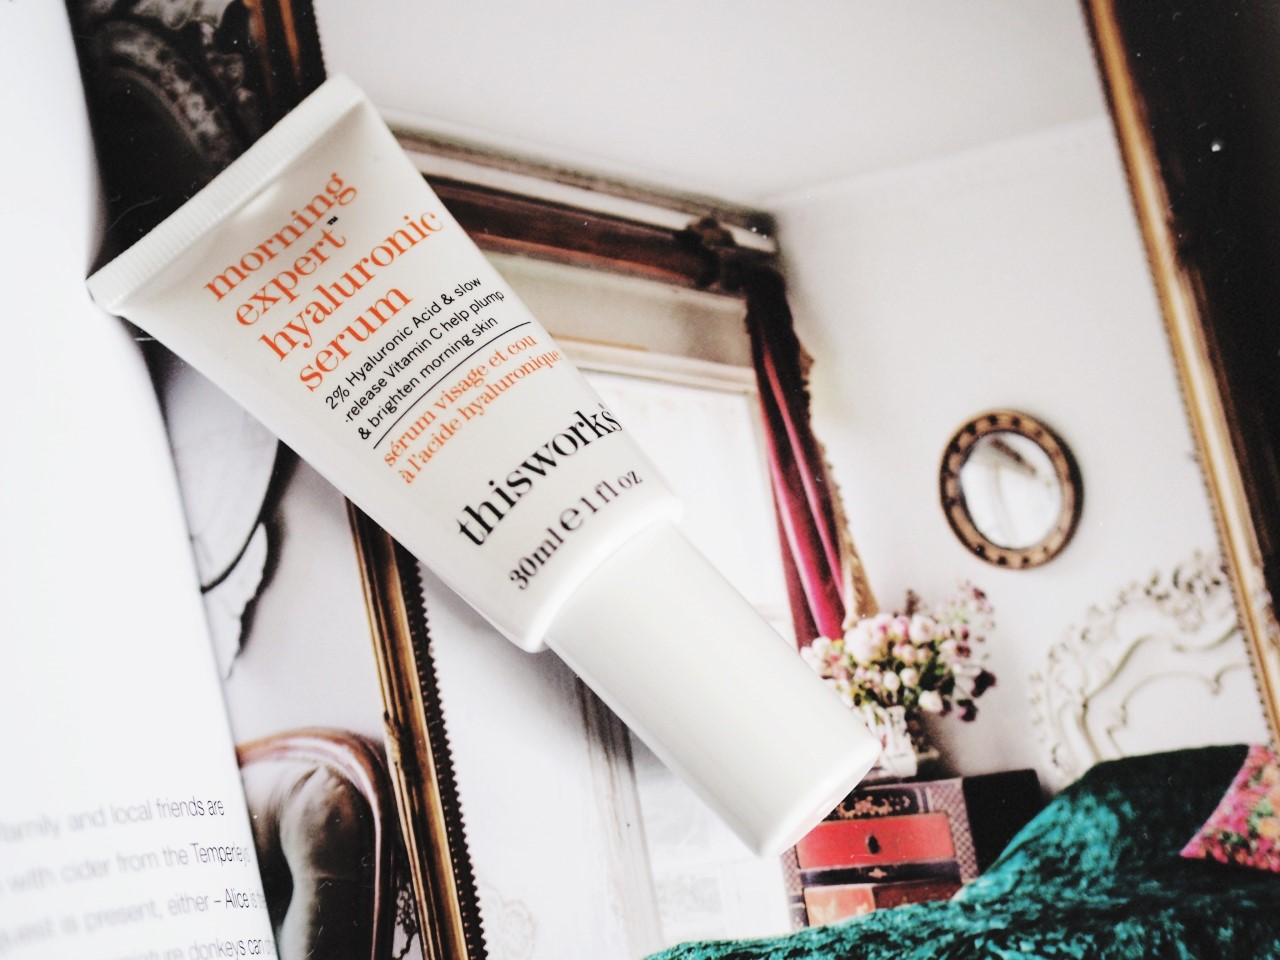 This Works Morning Expert Hyaluronic Serum Review